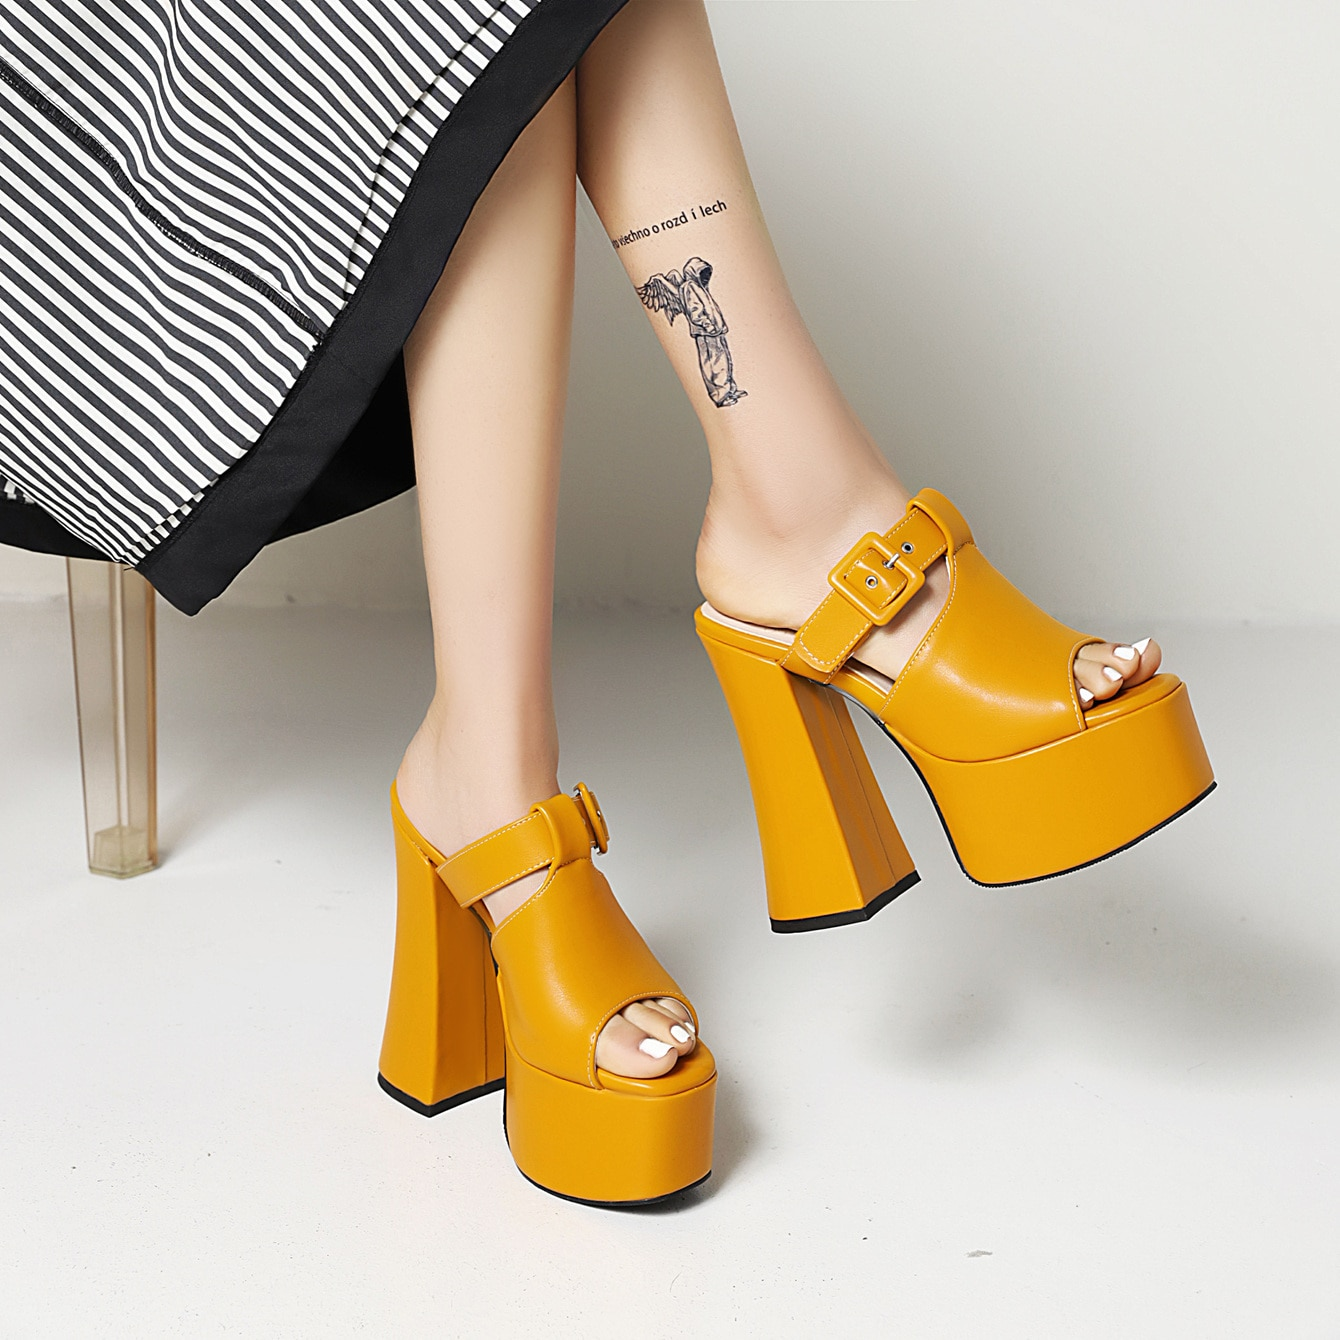 N-Y All Melody Women Modern Outdoor SlippersSuper High Thick Heel Platform Solid Lesiure Yellow Black Big Size to 43 Botas Mujer